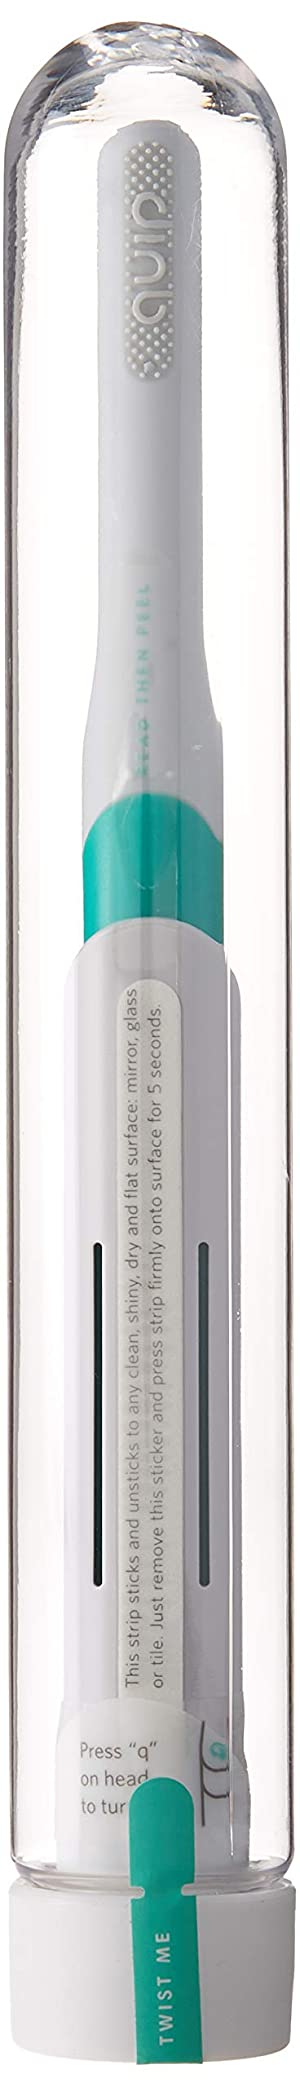 Quip Electric Toothbrush - Green Color - Electric Brush and Travel Cover Mount - Frustration Free Packaging